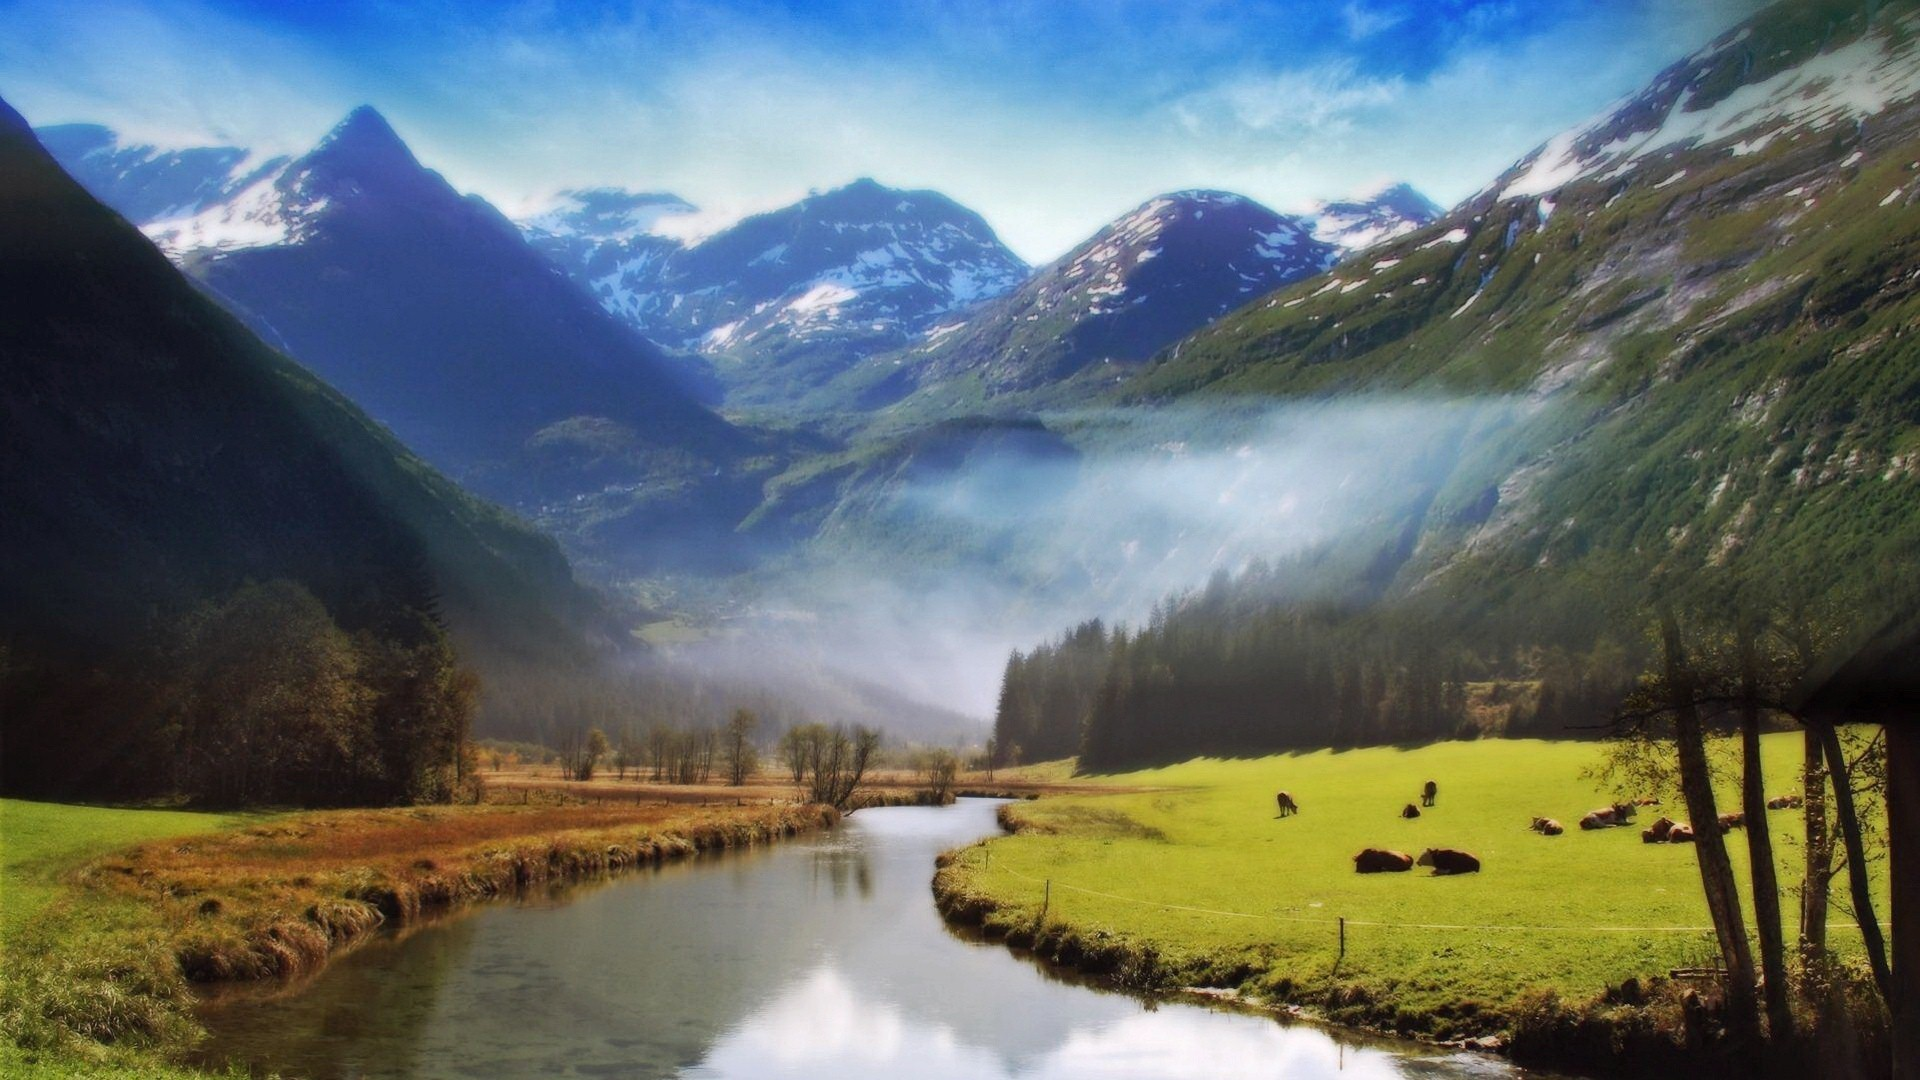 Cloudy Desktop River Wallpapers Images Picture Download